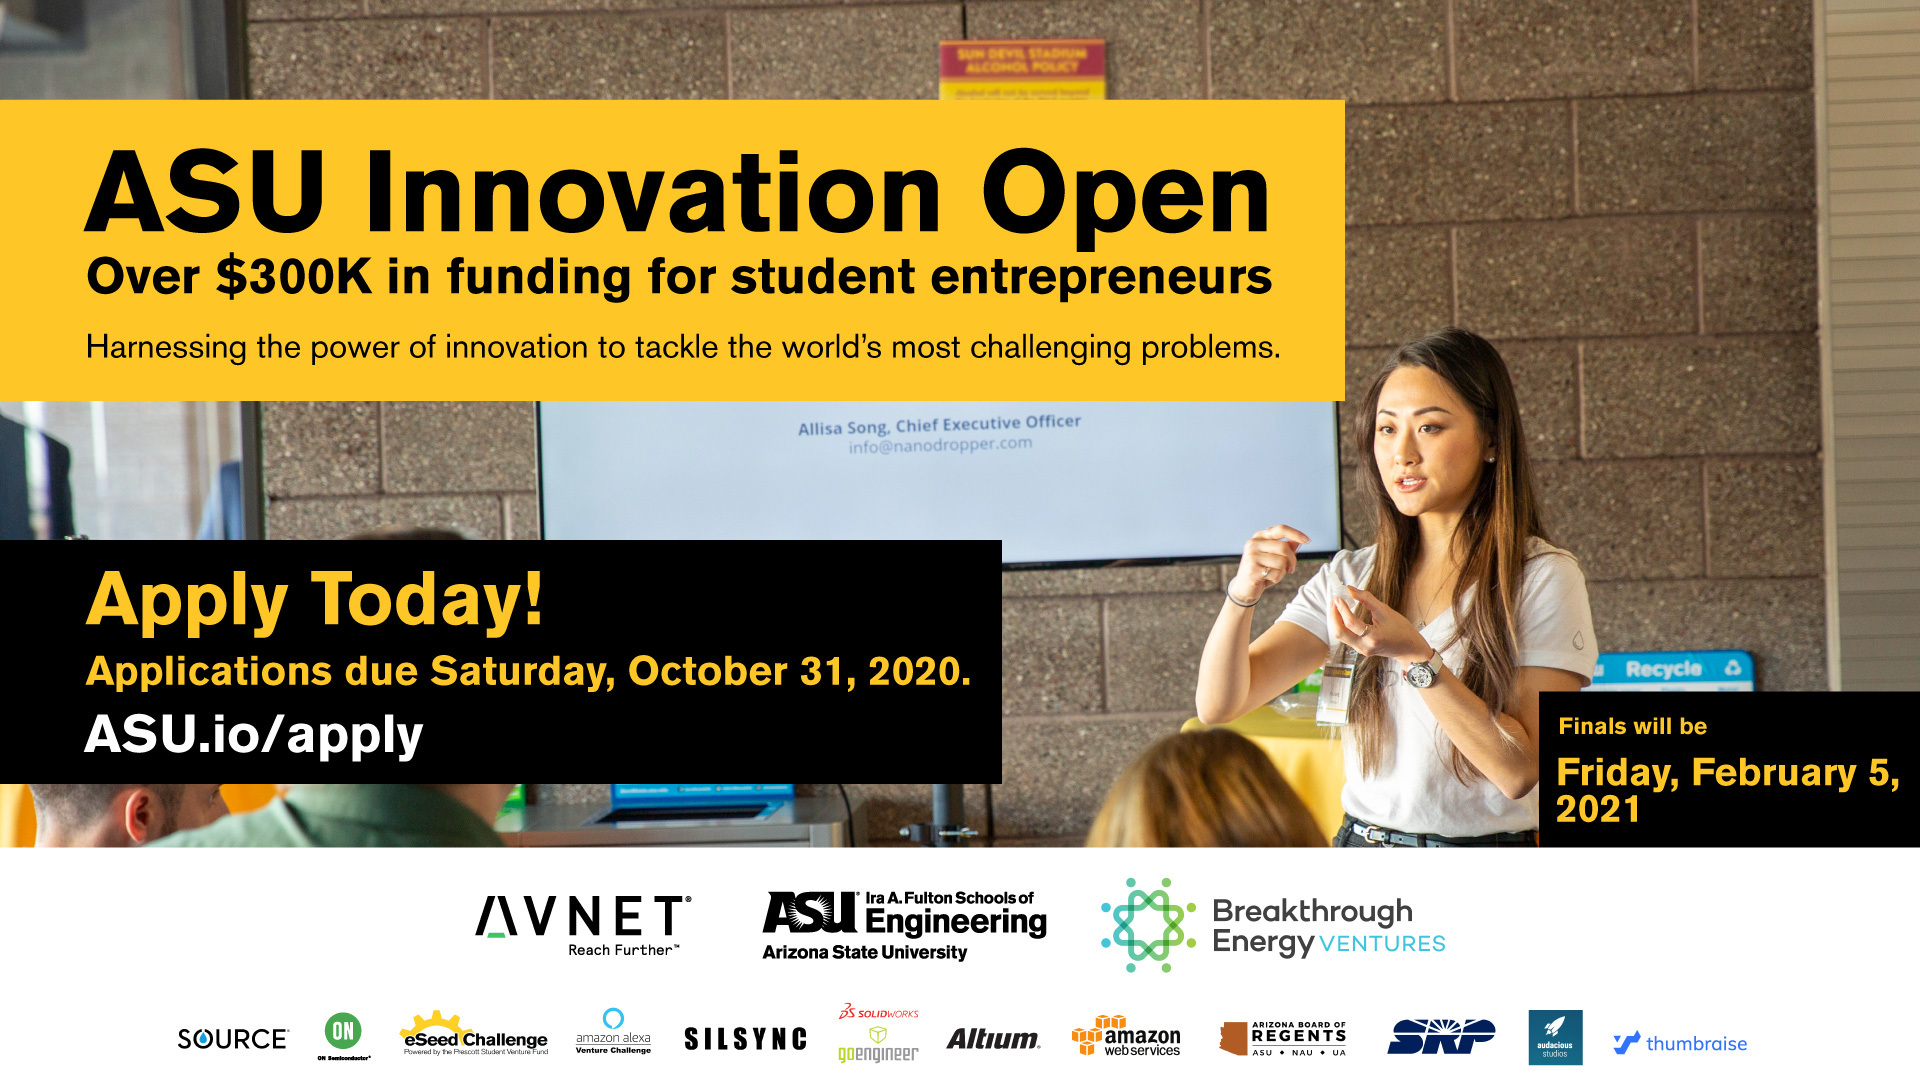 Innovation open 2020